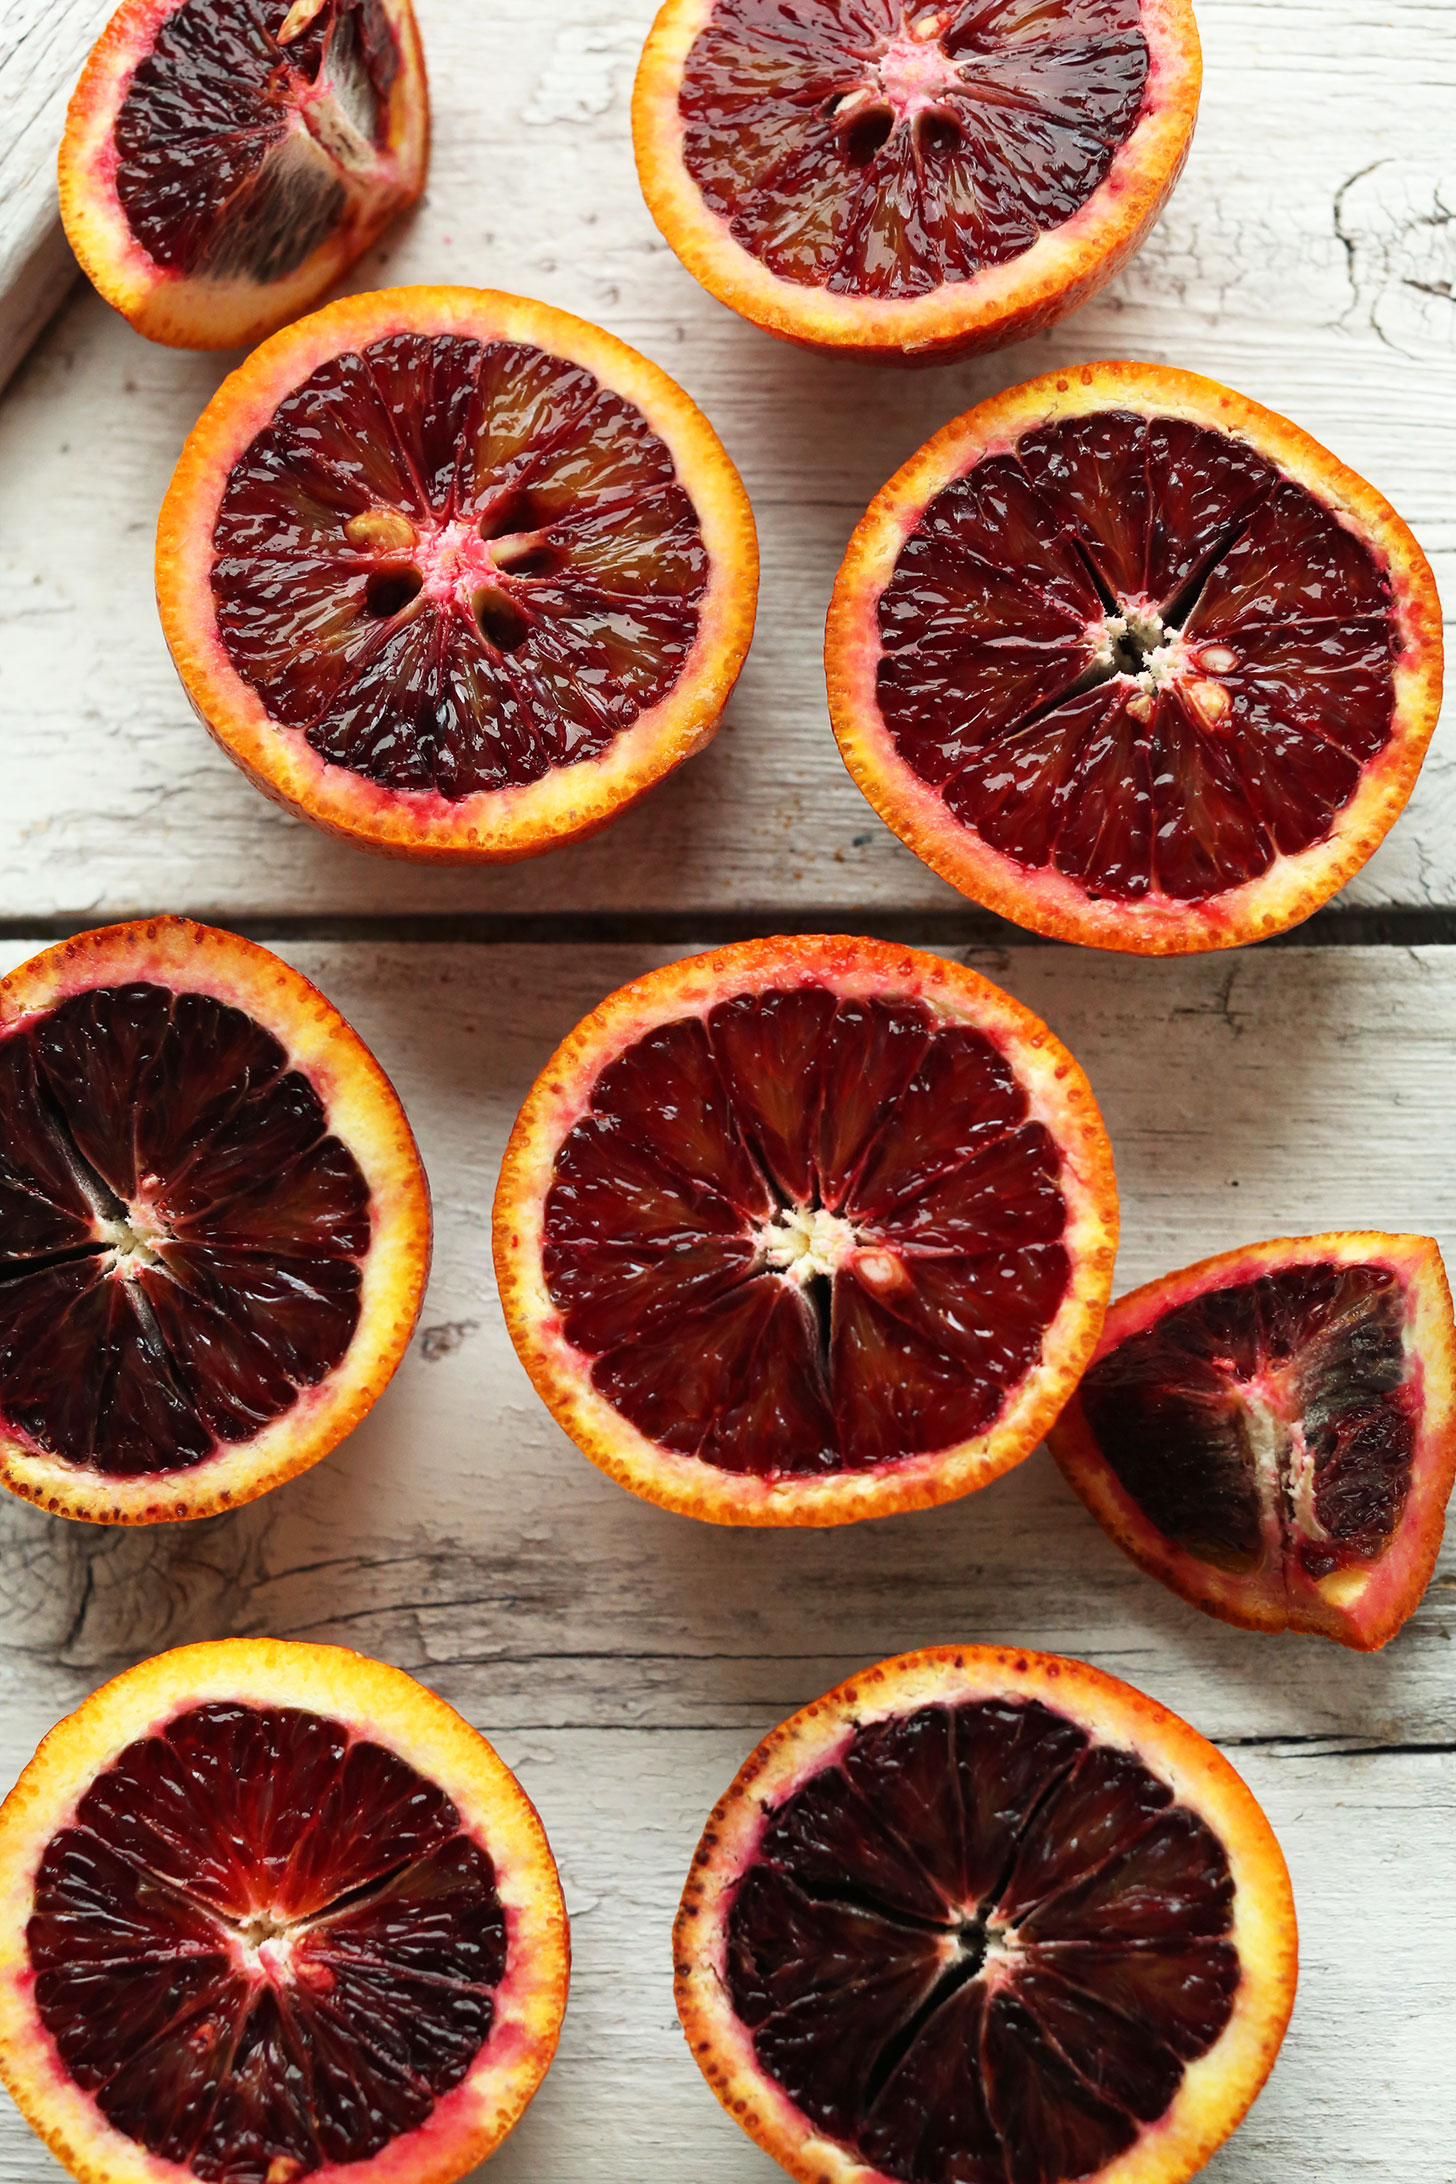 Halved blood oranges for making our amazing vegan Blood Orange Green Smoothie